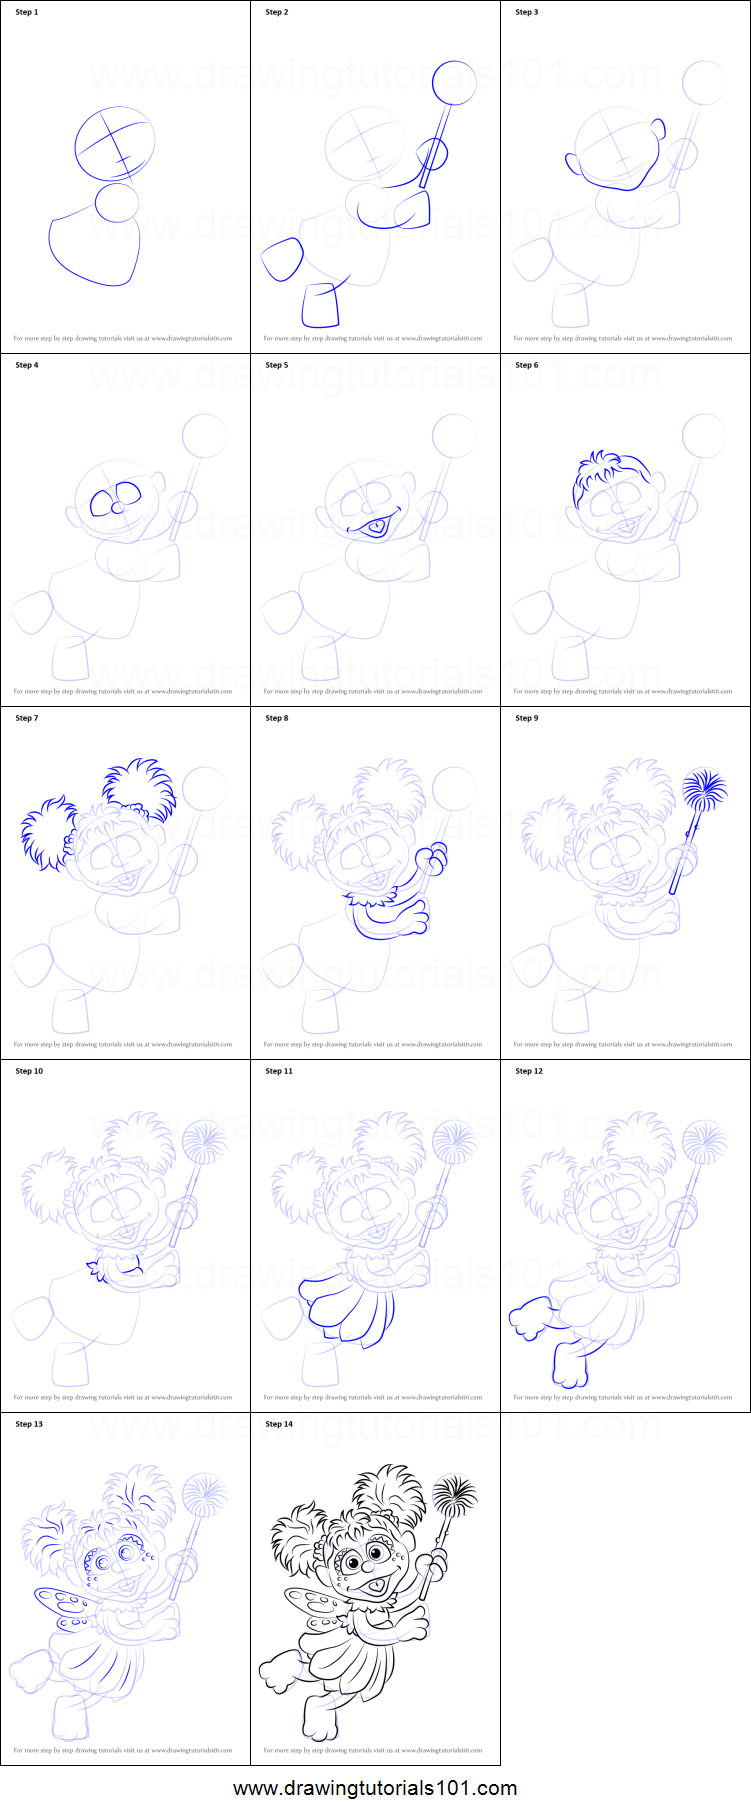 how to draw abby cadabby from sesame street printable step by step